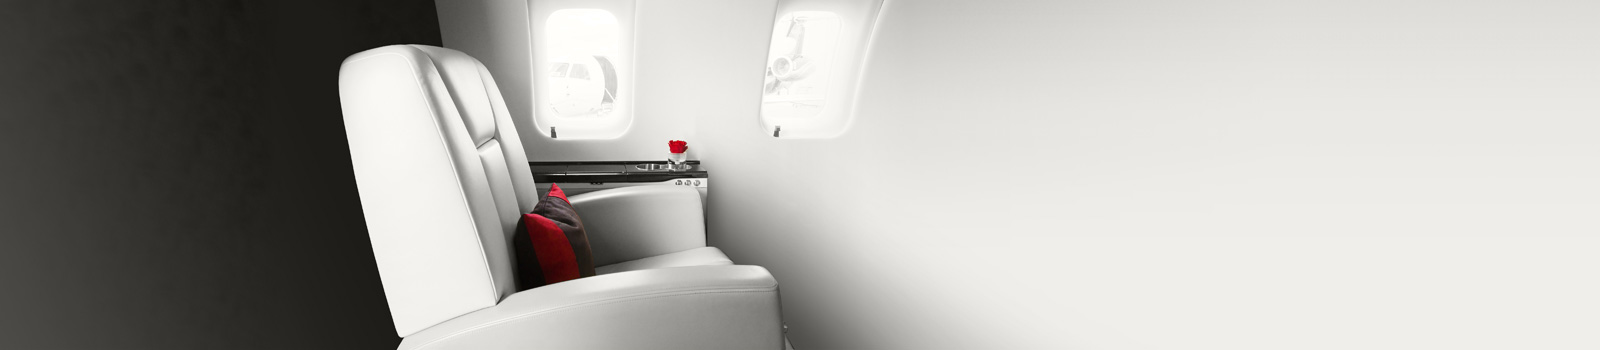 slider_home_planeSeat